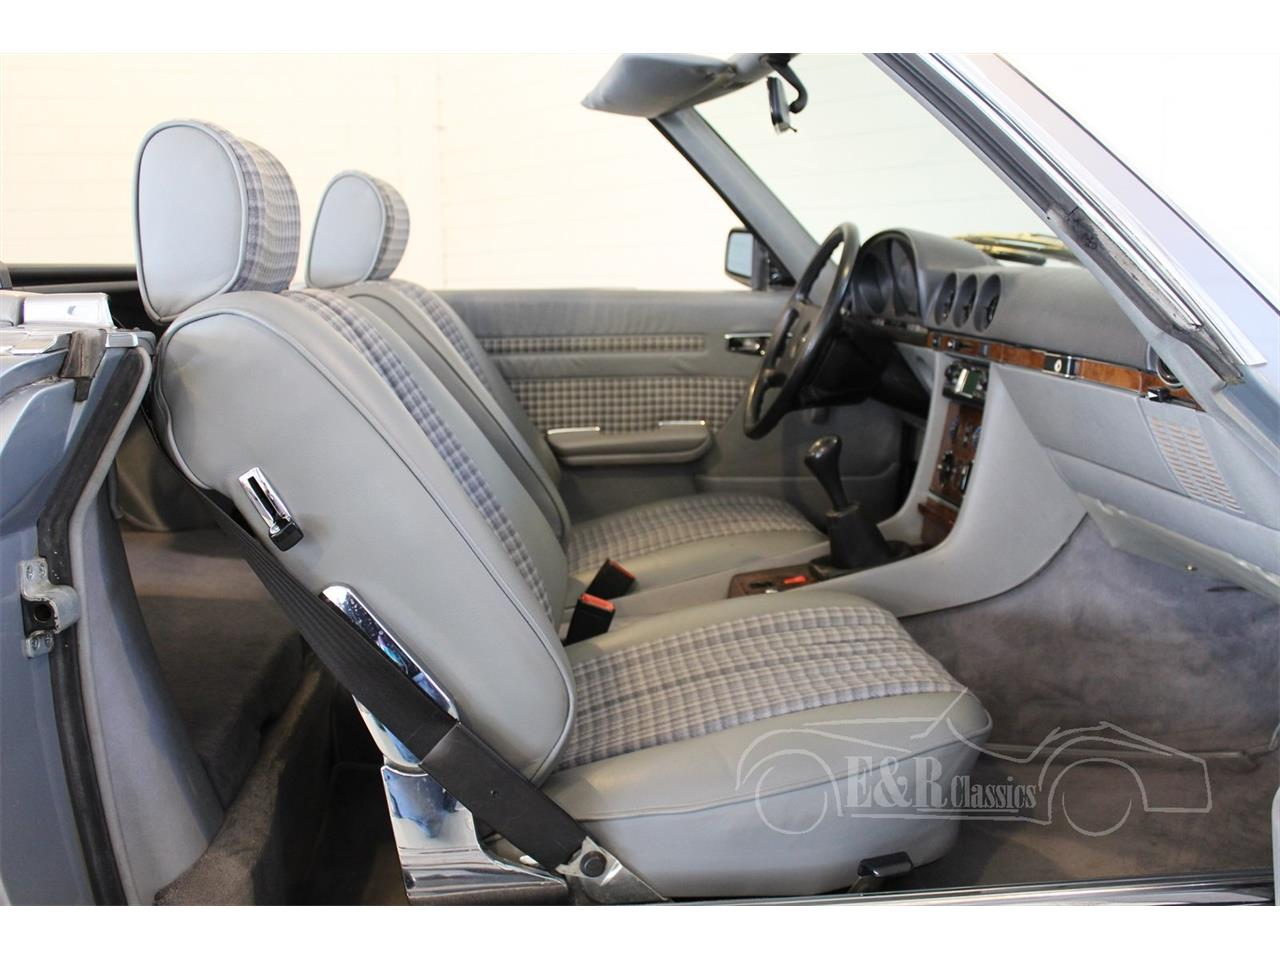 Large Picture of '83 280SL - $34,150.00 Offered by E & R Classics - QEBS